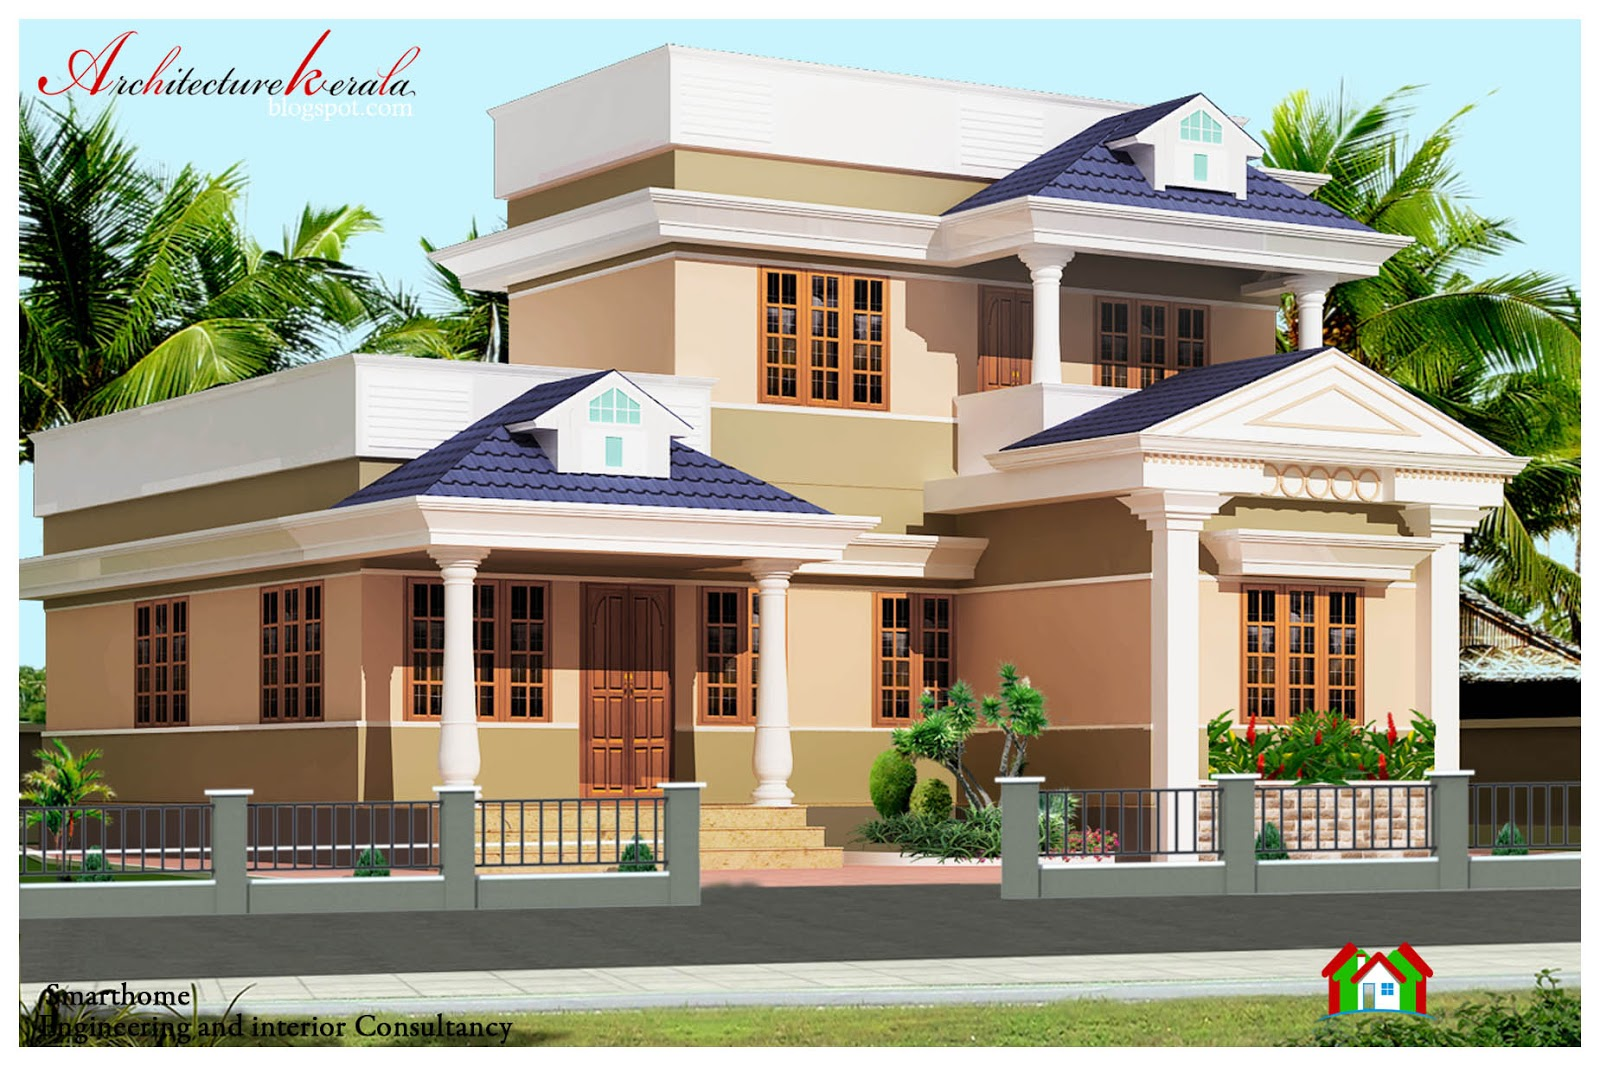 Architecture kerala 1000 sq ft kerala style house plan for Kerala style house plans with photos